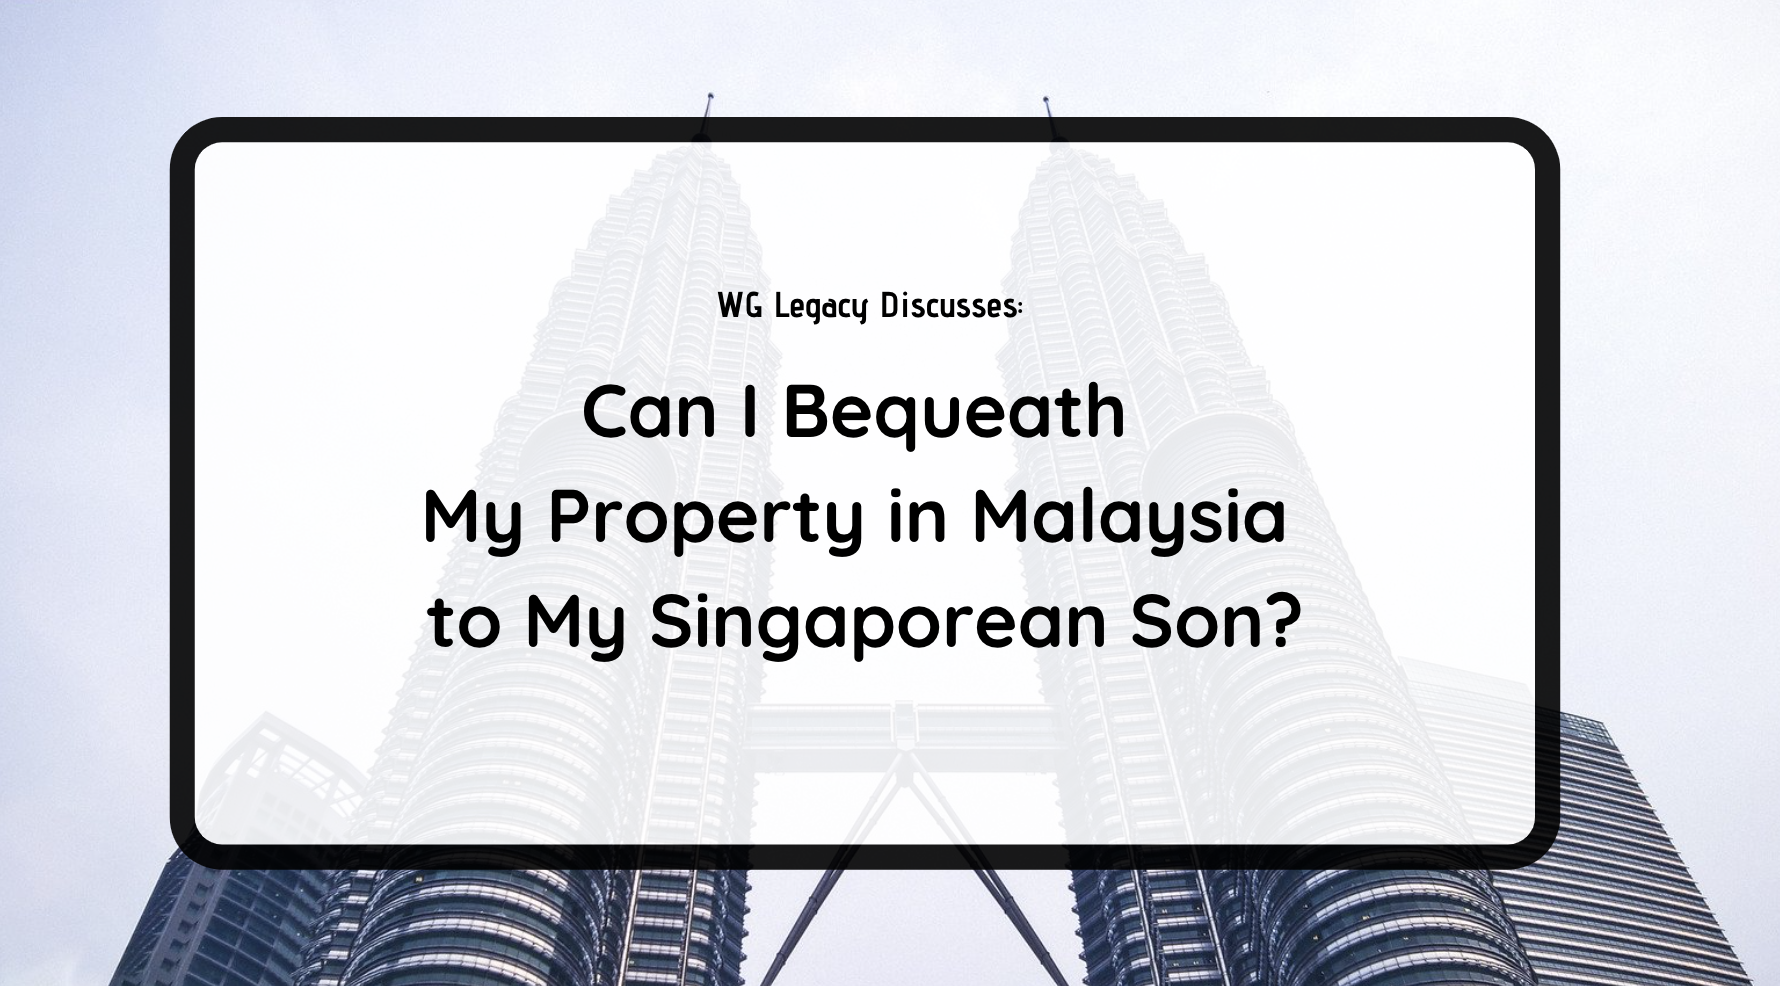 Can I Bequeath My Property in Malaysia to My Singaporean Son?